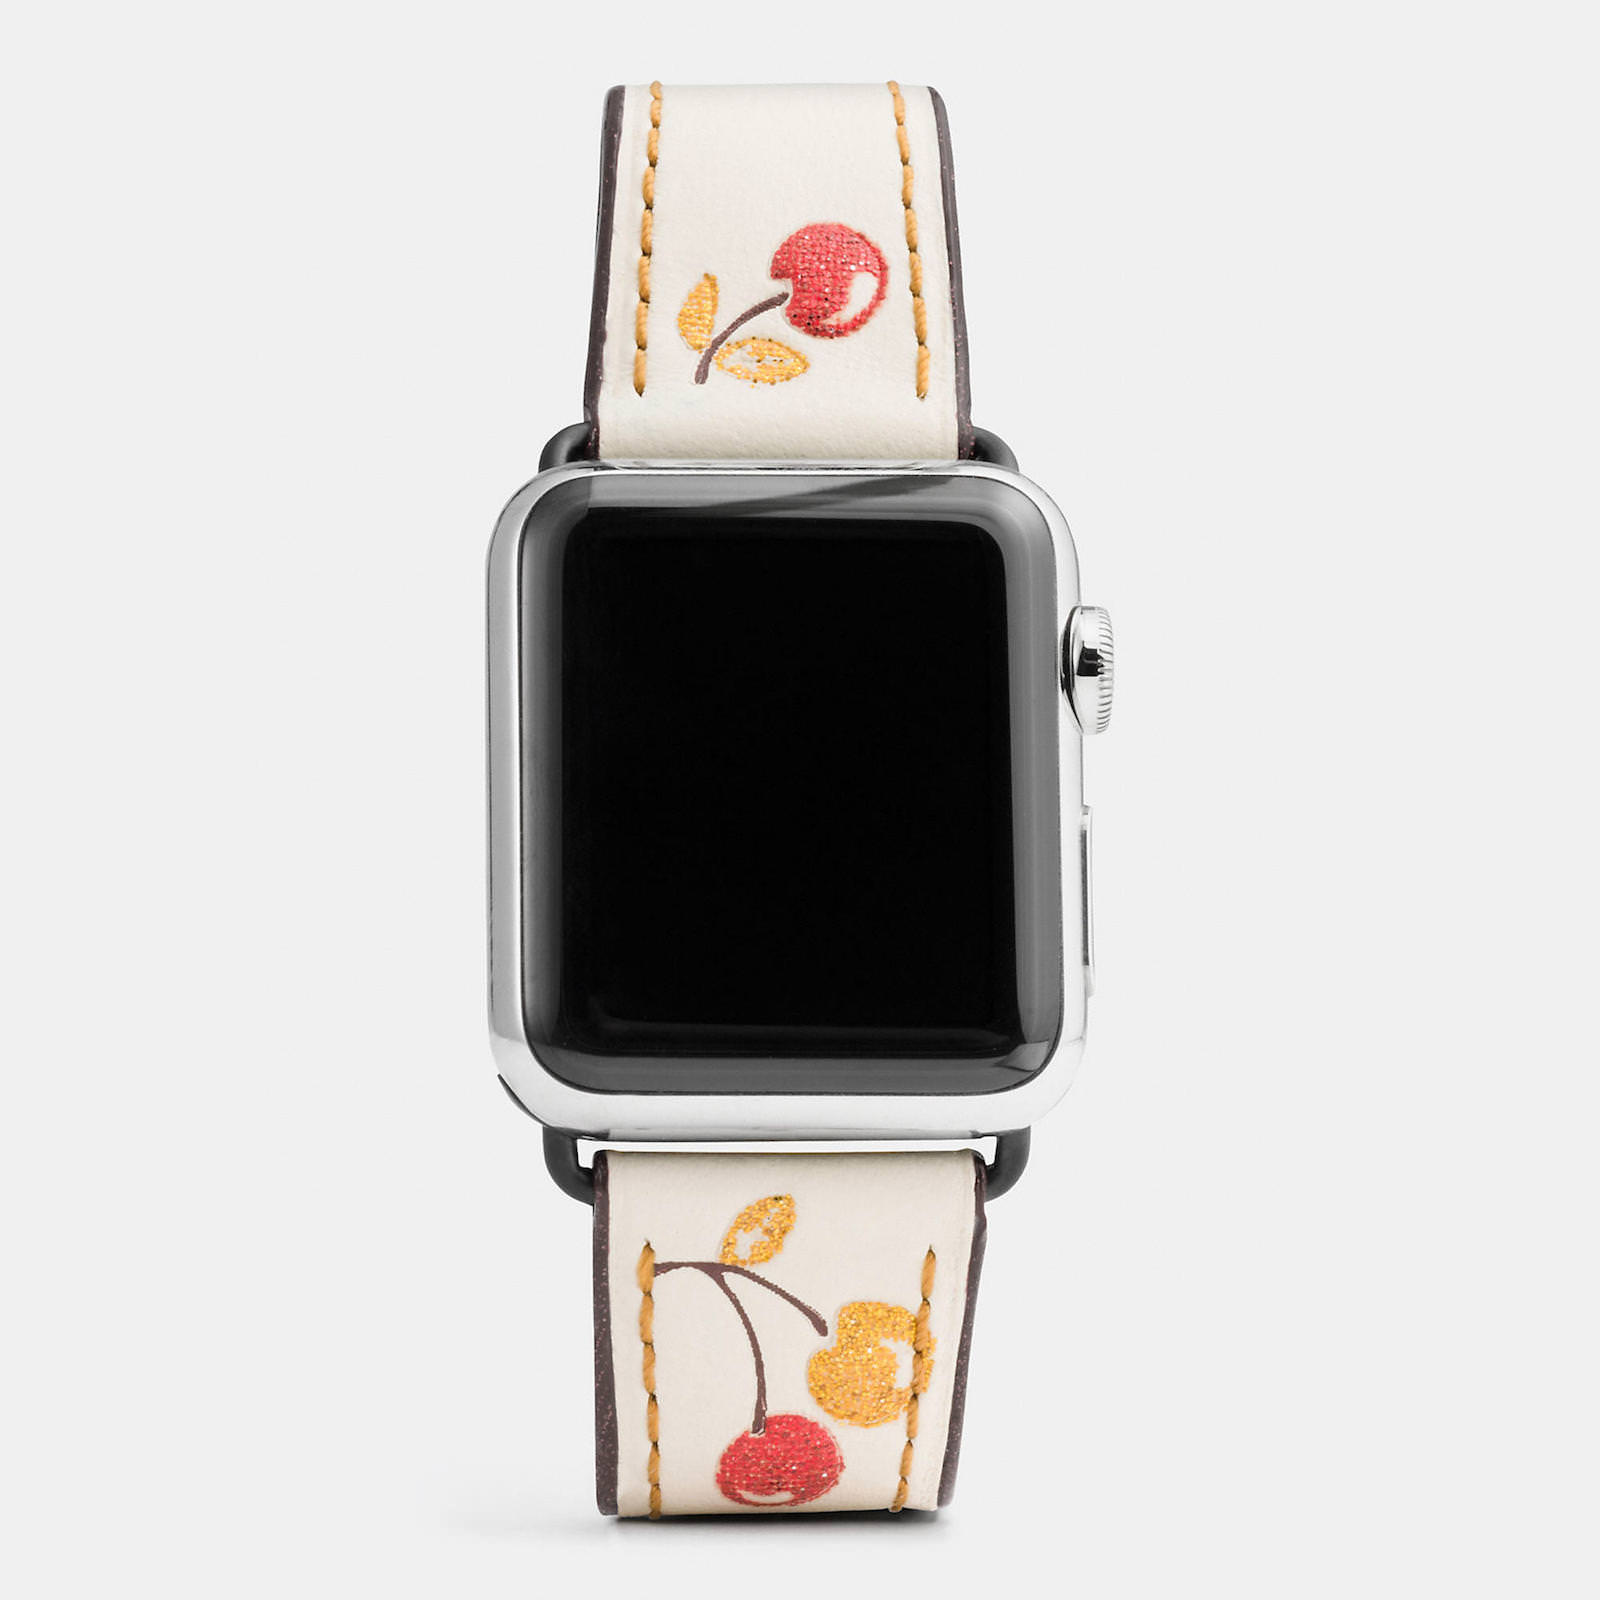 Apple-Watch-Coach-Band-Autumn-Season-5.jpeg